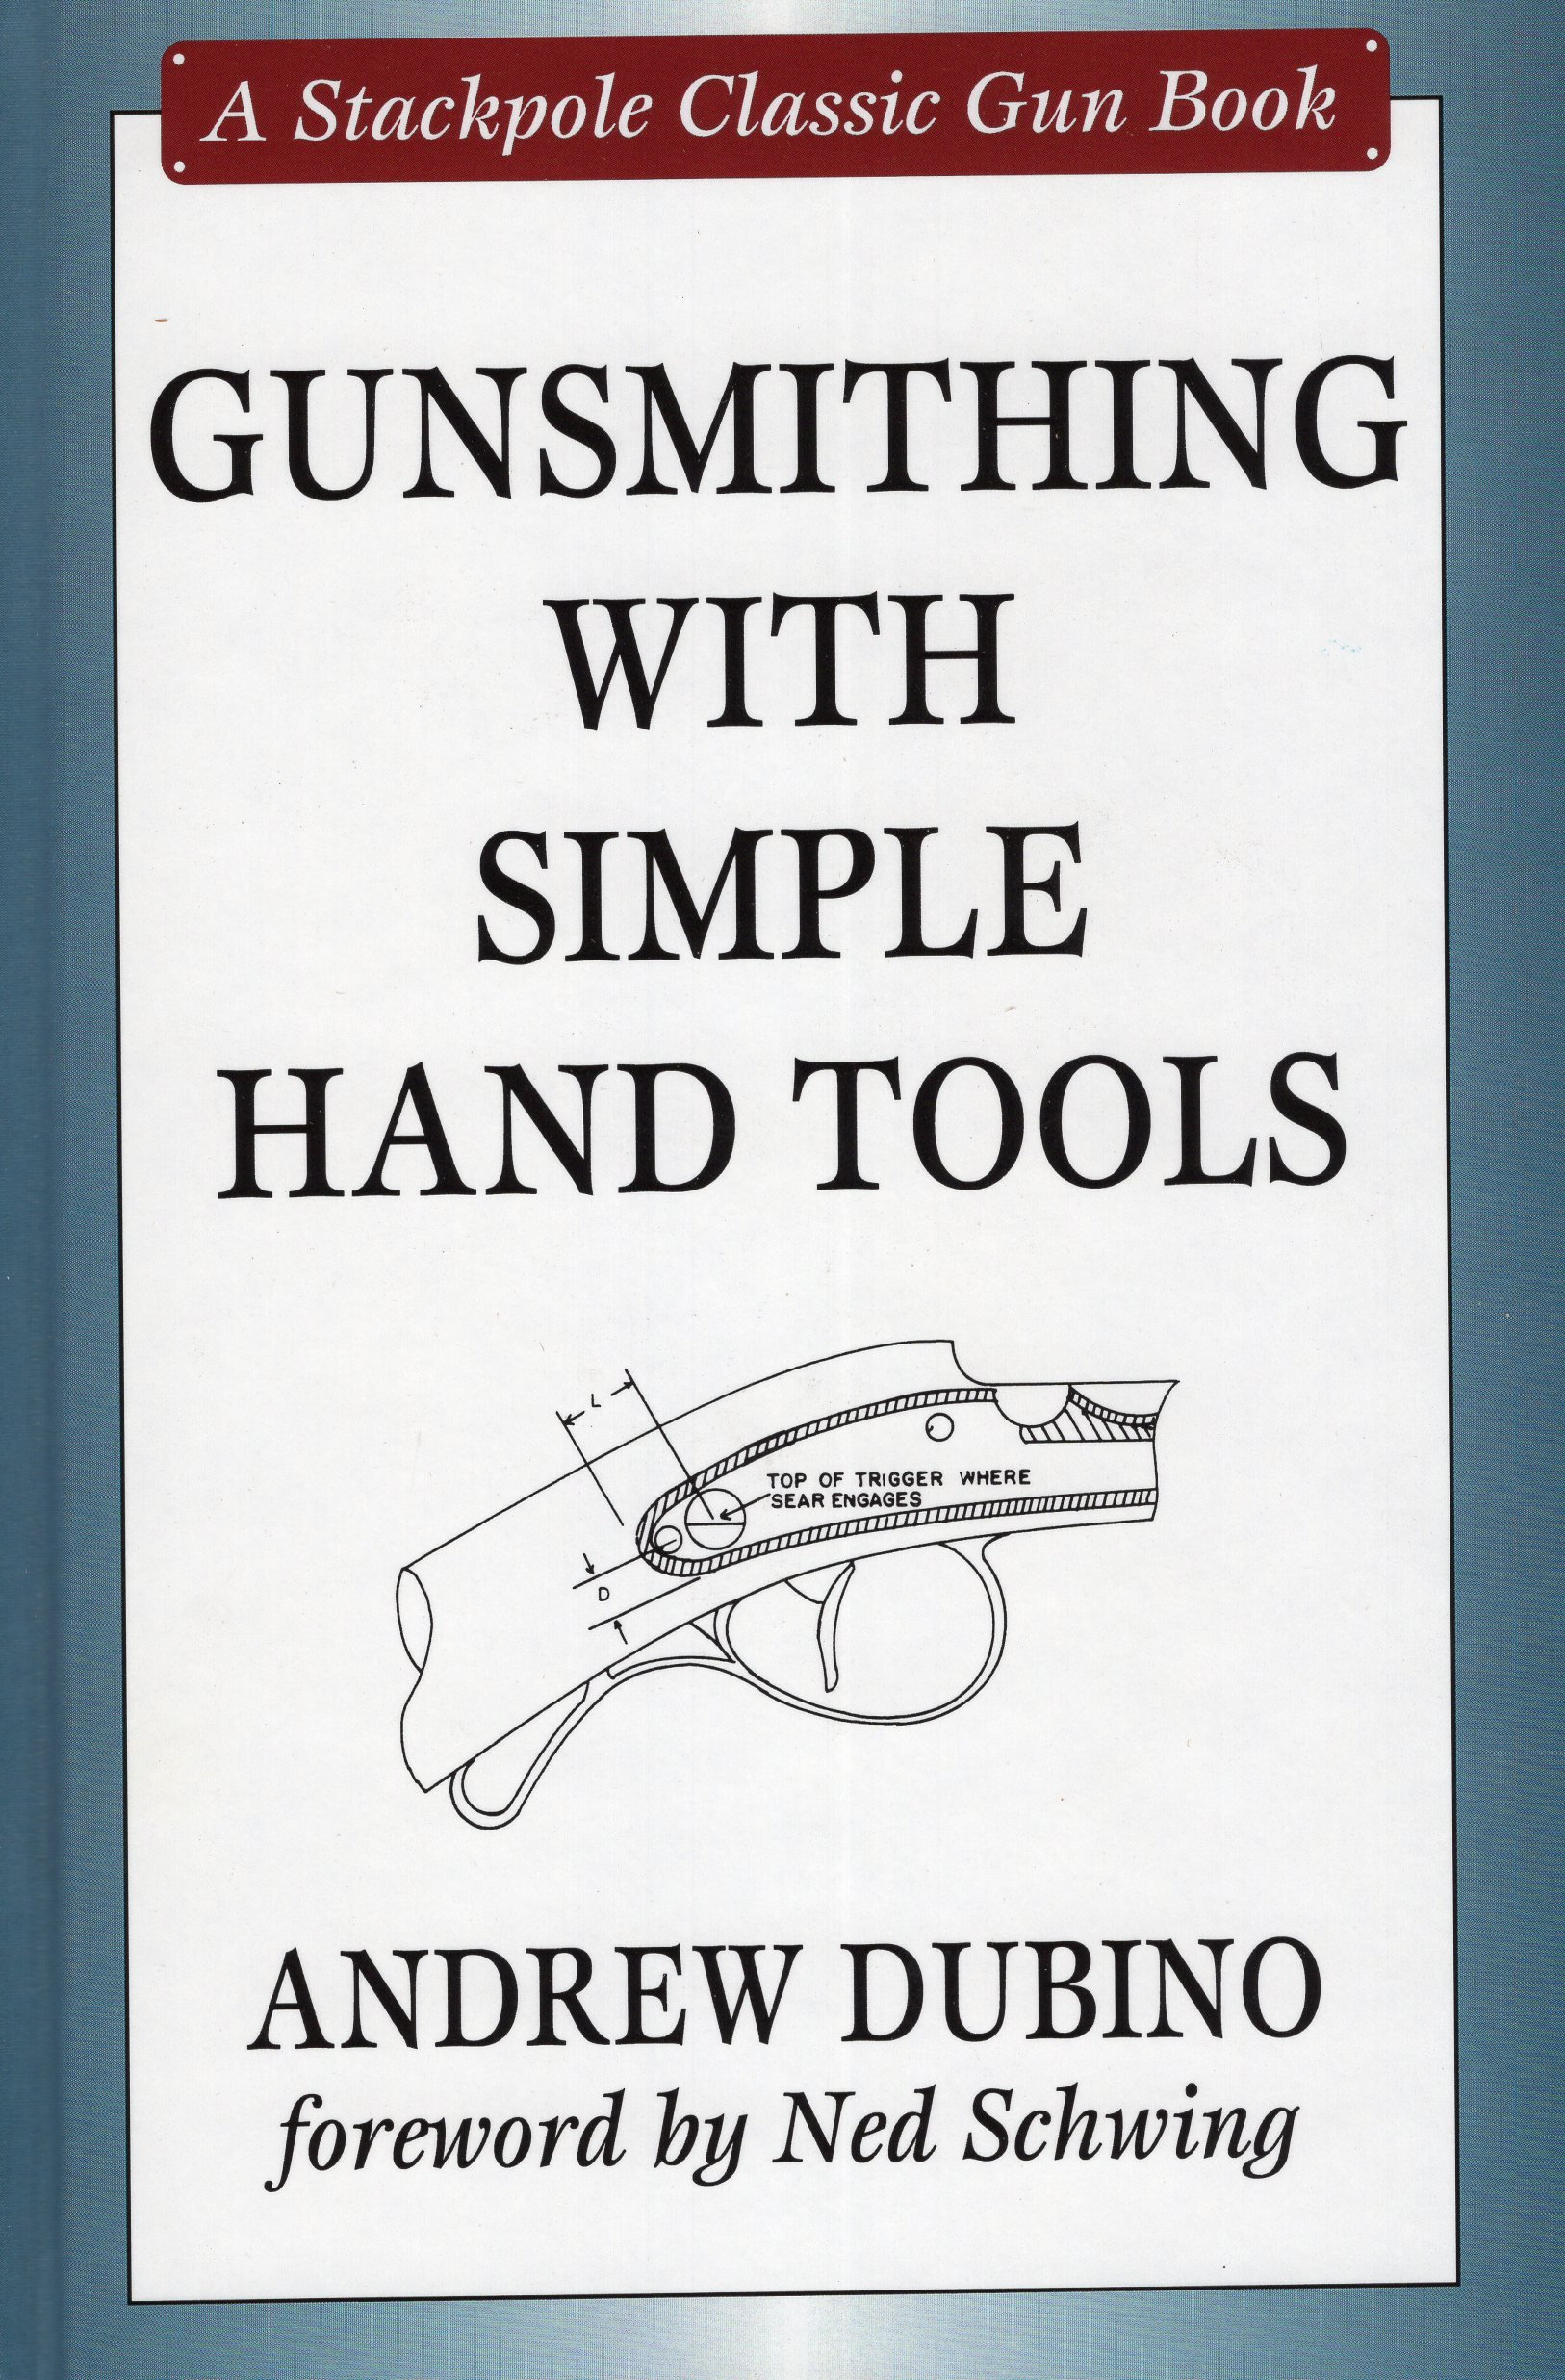 gunsmithing-with-simple-hand-tools-stackpole-classic-gun-books